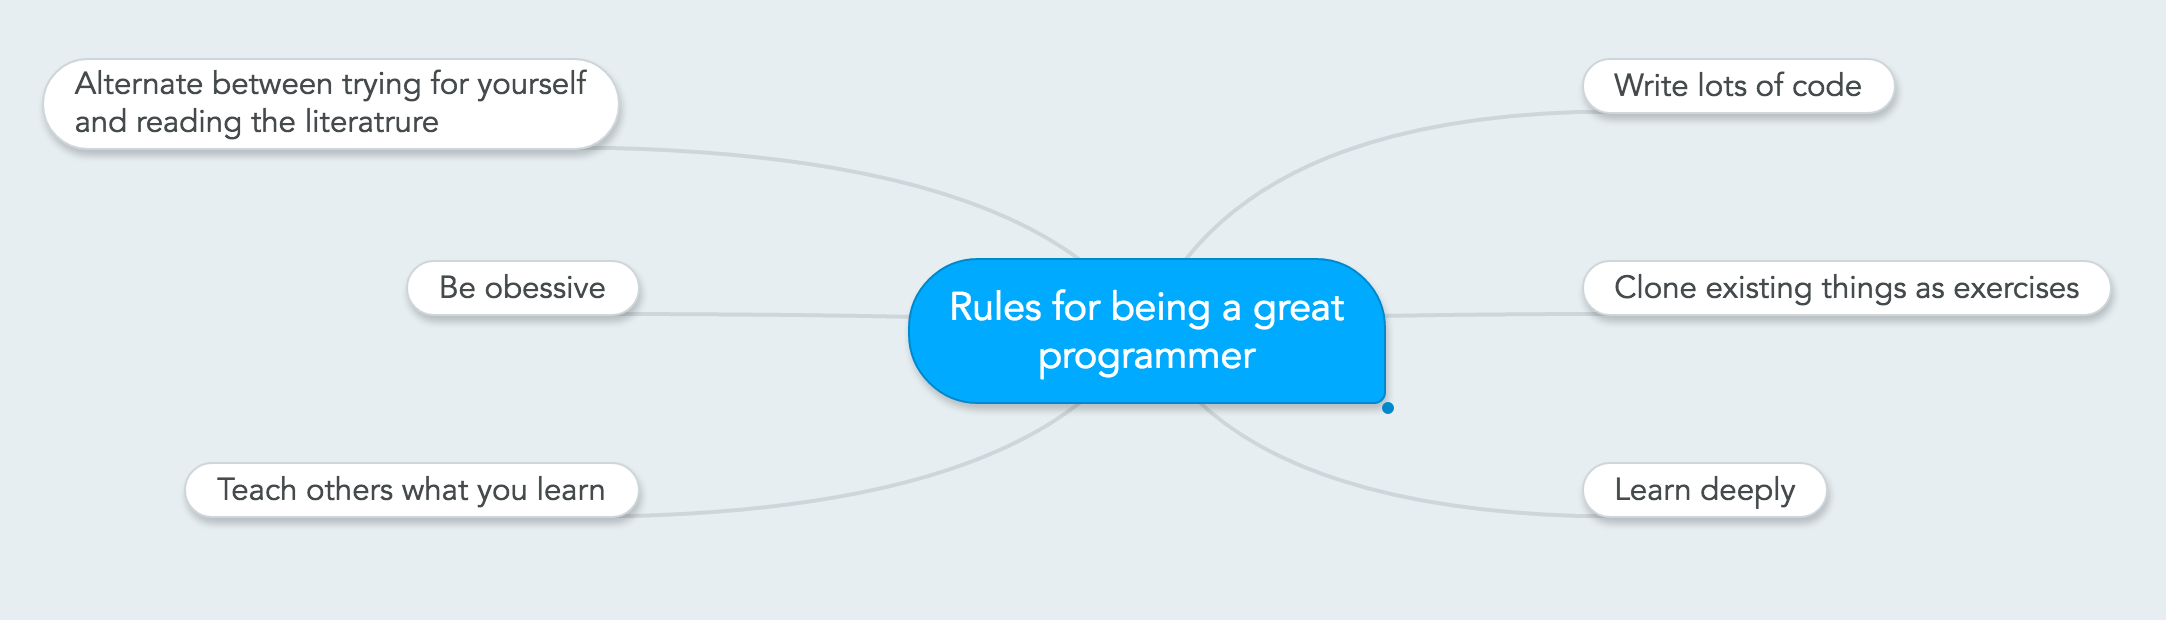 Mindmap of the rules